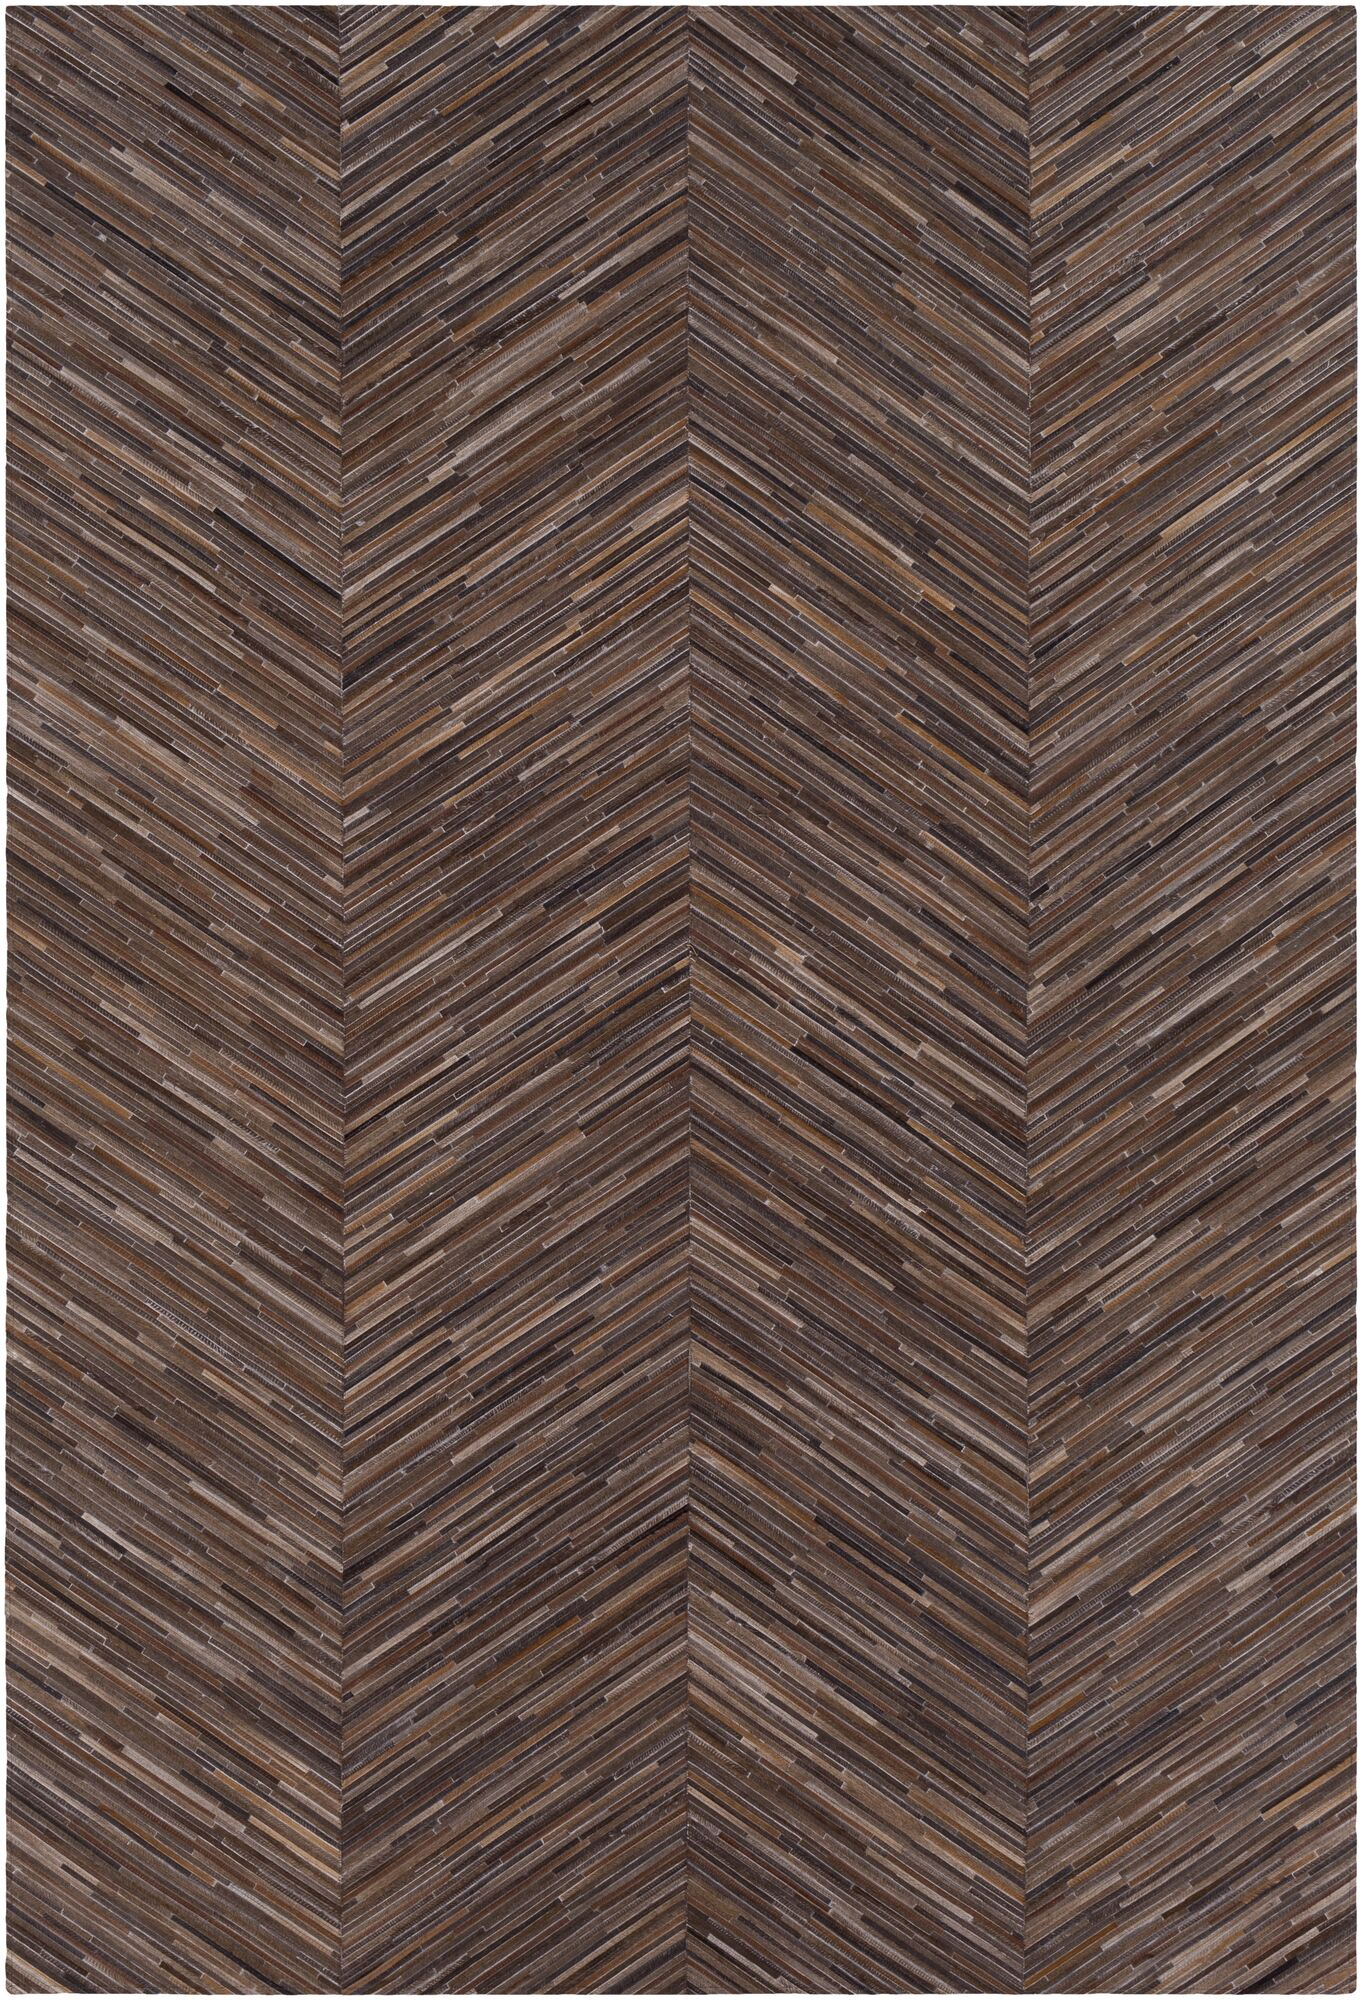 Loraine Hand Woven Tan/Taupe Area Rug Rug Size: Rectangle 2' x 3'